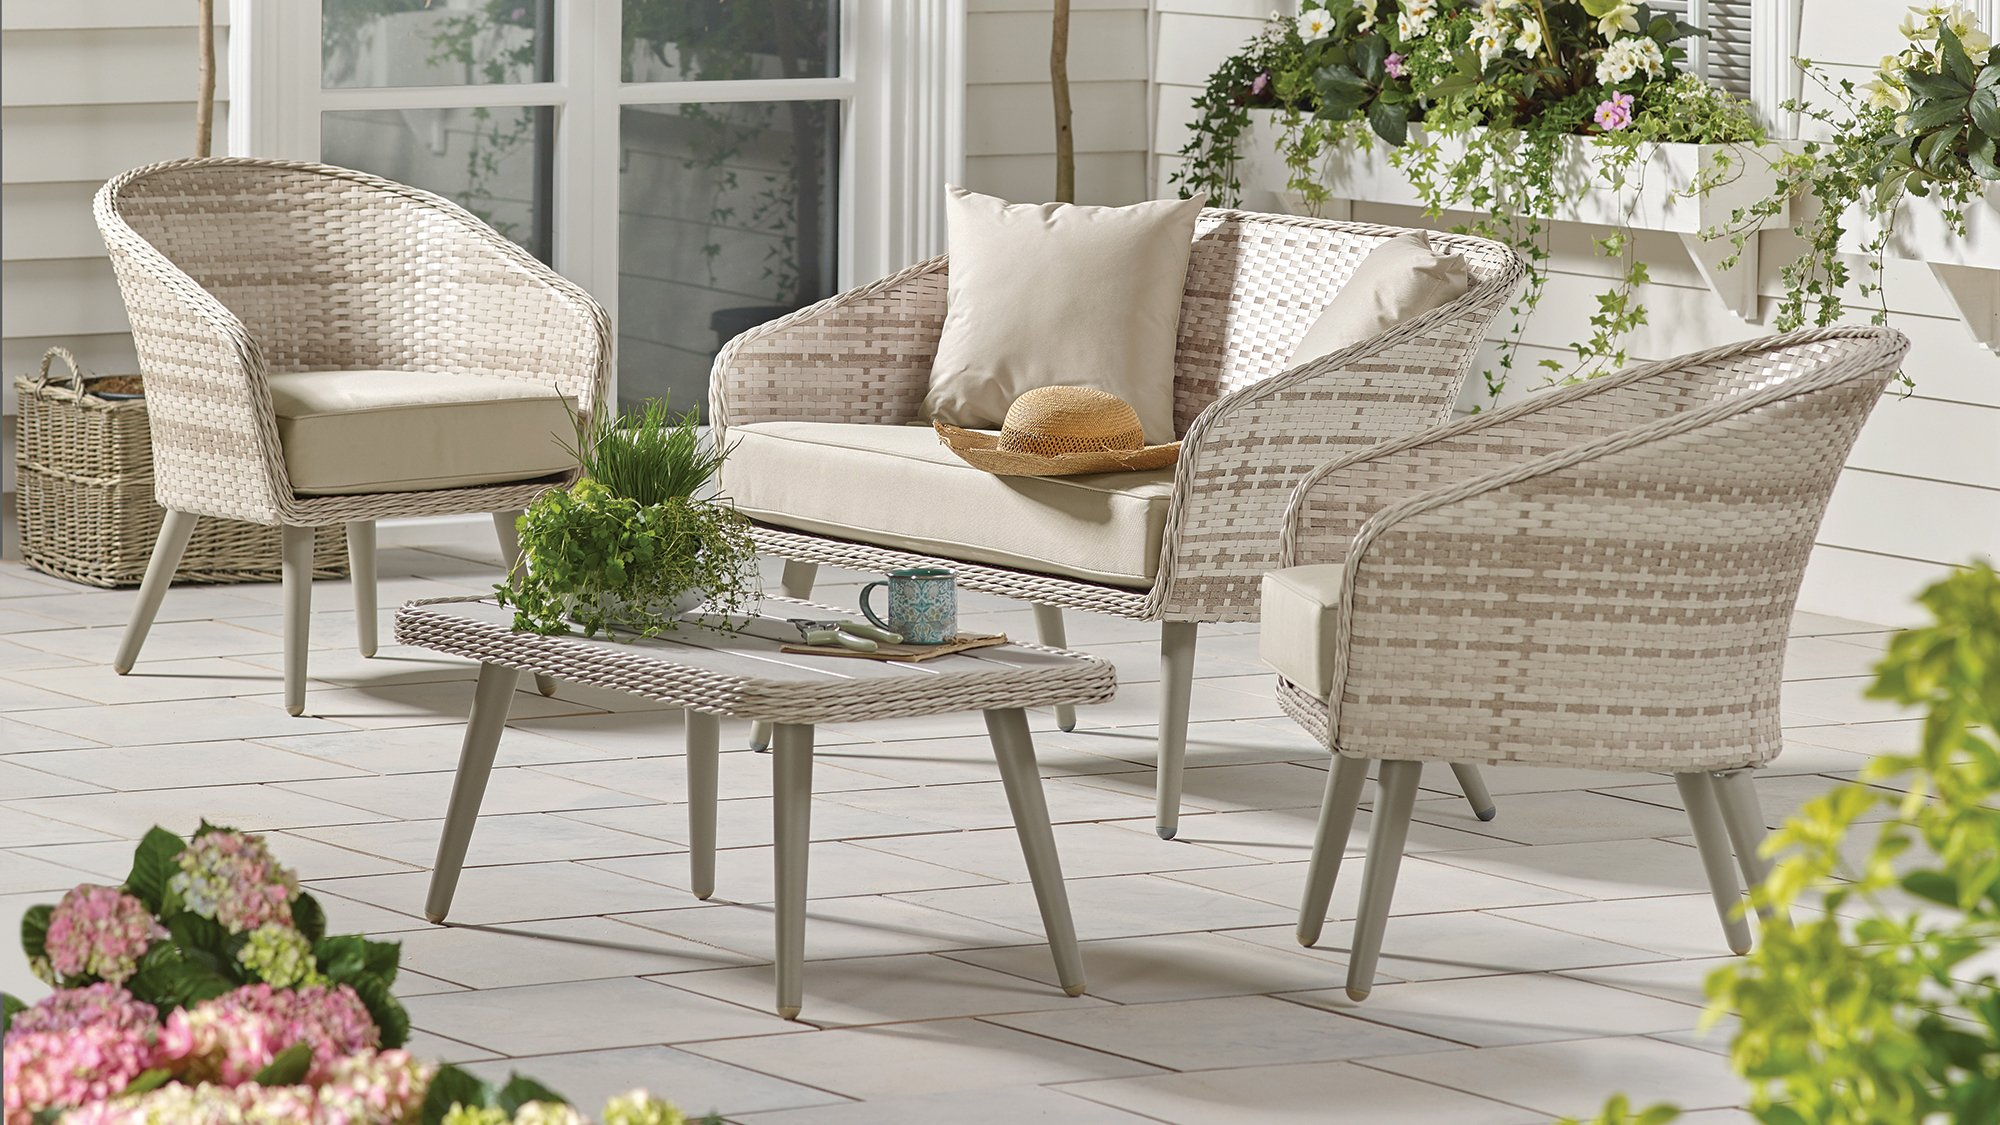 f2dc595b6aee It's the calming tones of this conversation set that stand out, comprising  two chairs, a sofa and coffee table. It's compact enough to fit into  smaller ...